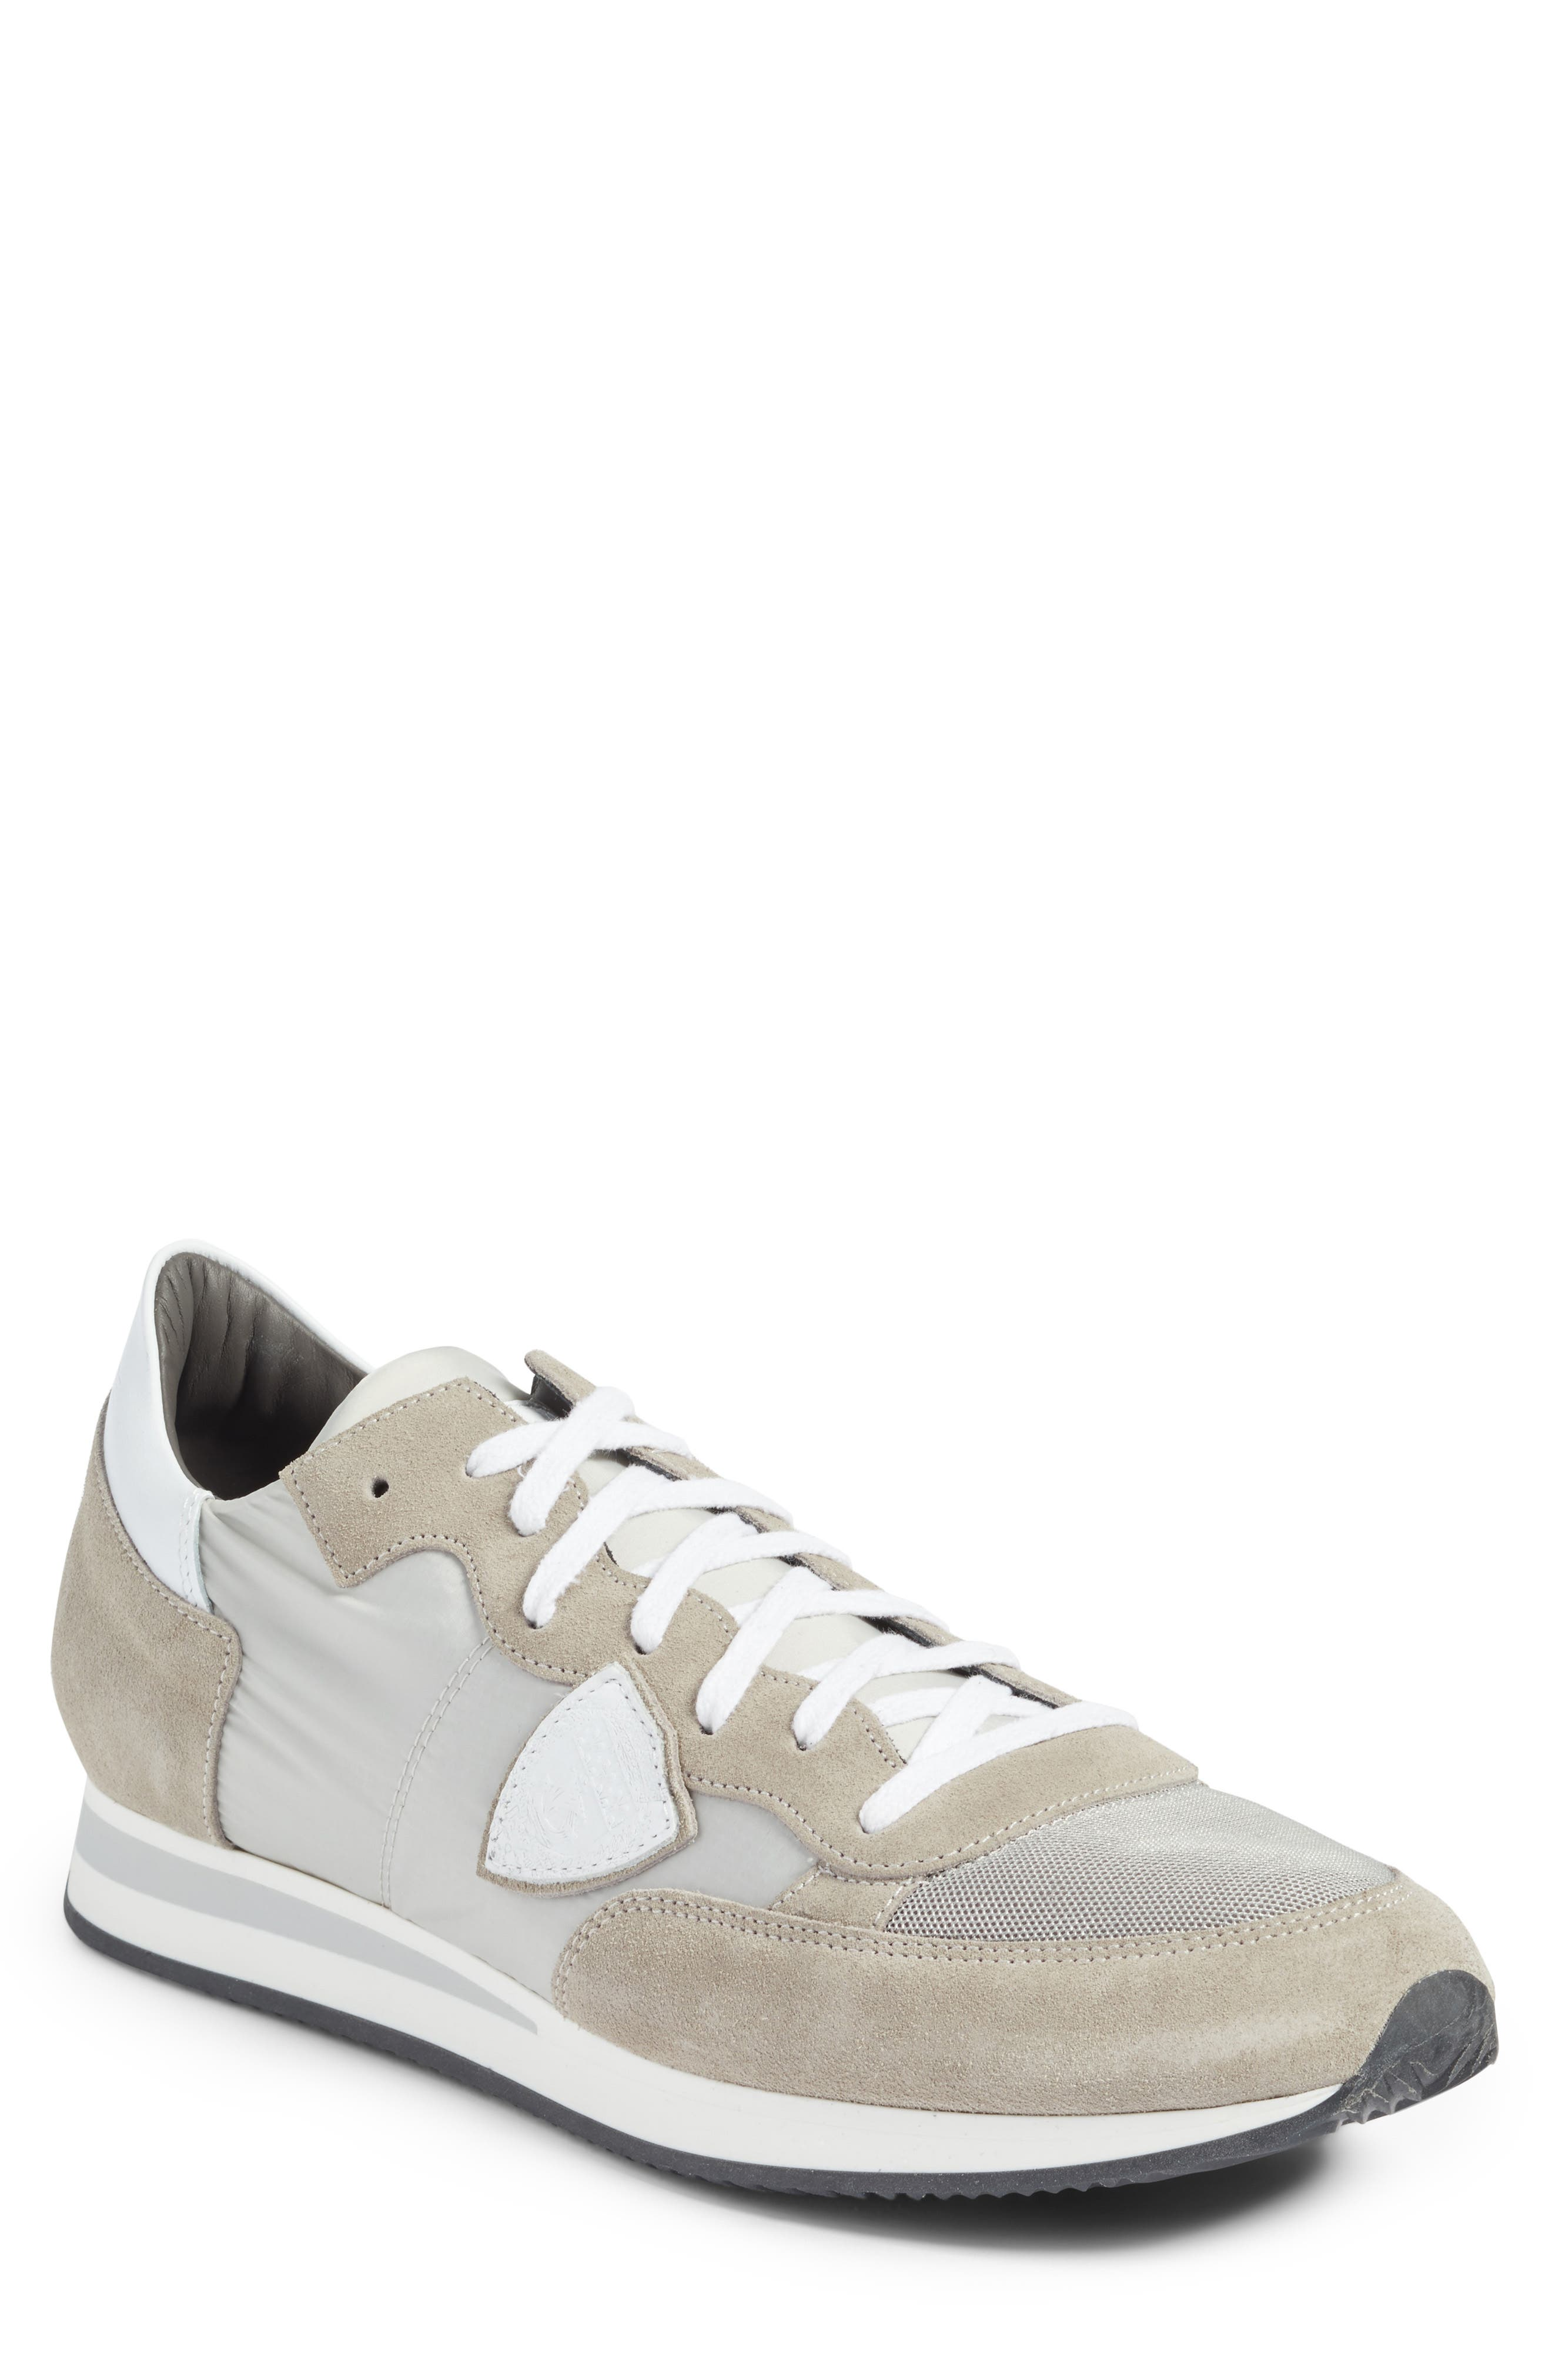 Tropez Low Top Sneaker,                             Main thumbnail 1, color,                             Grey/ White